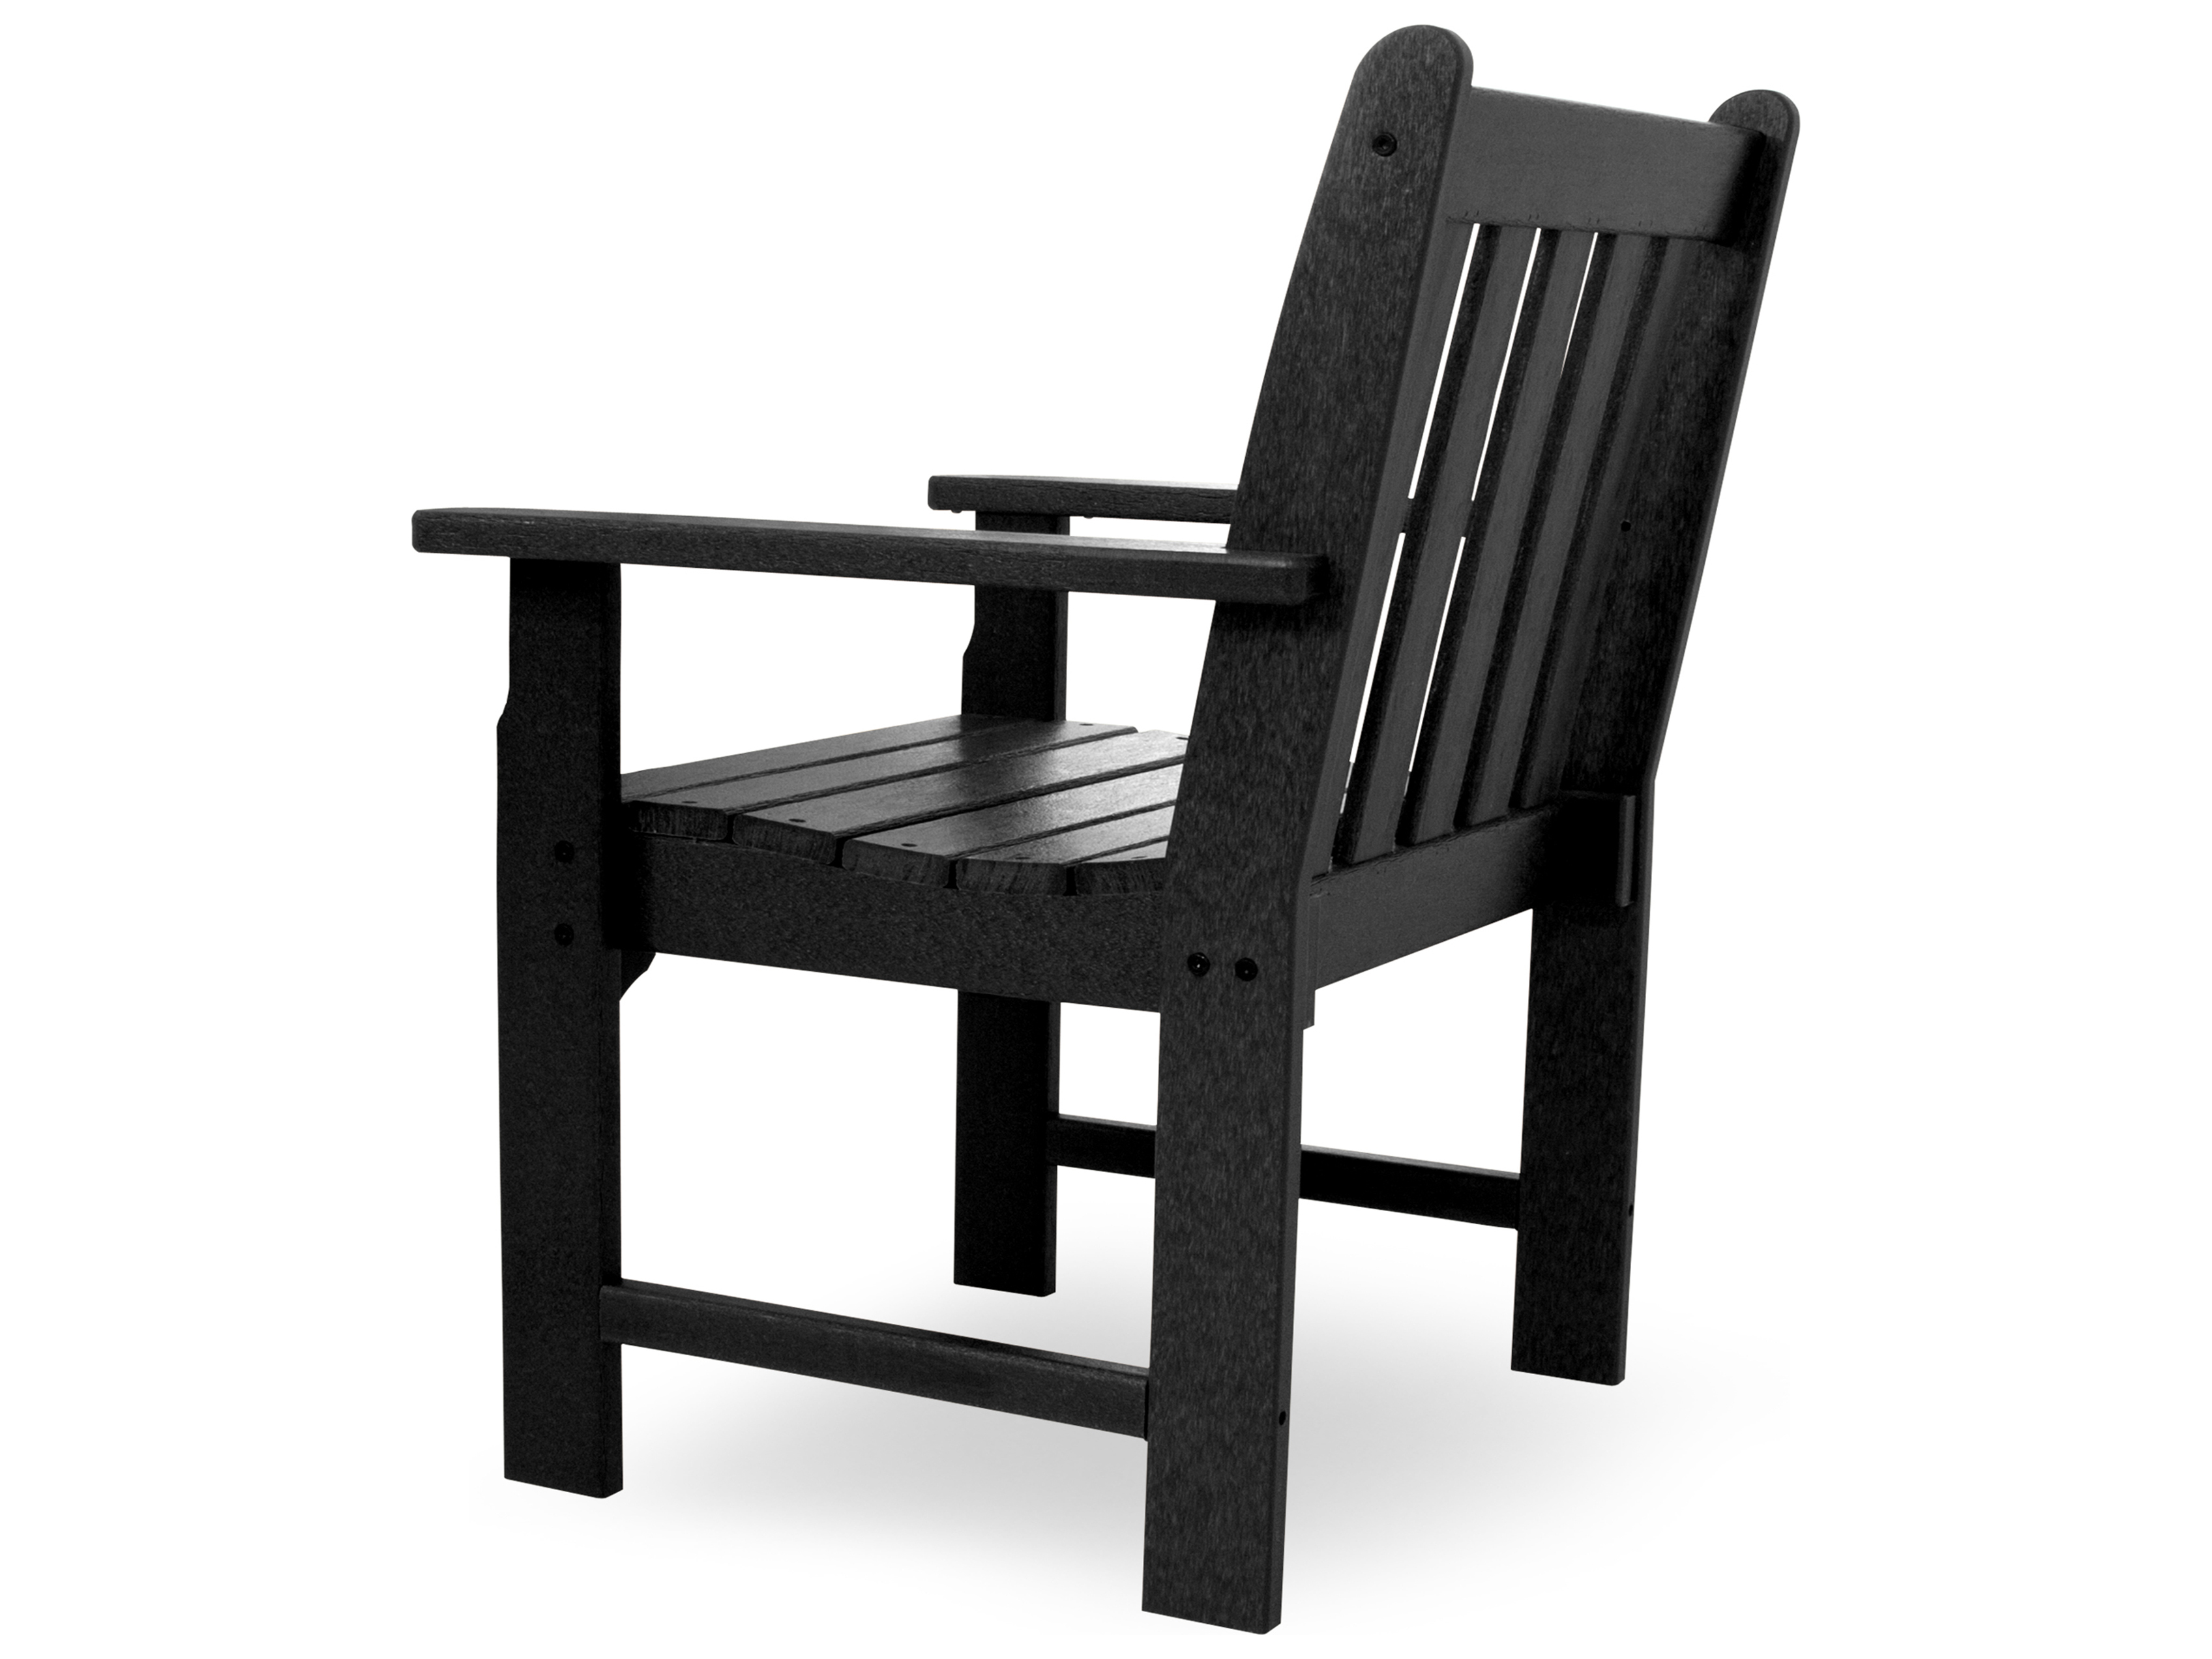 POLYWOOD® Vineyard Recycled Plastic Lounge Chair | GNB24